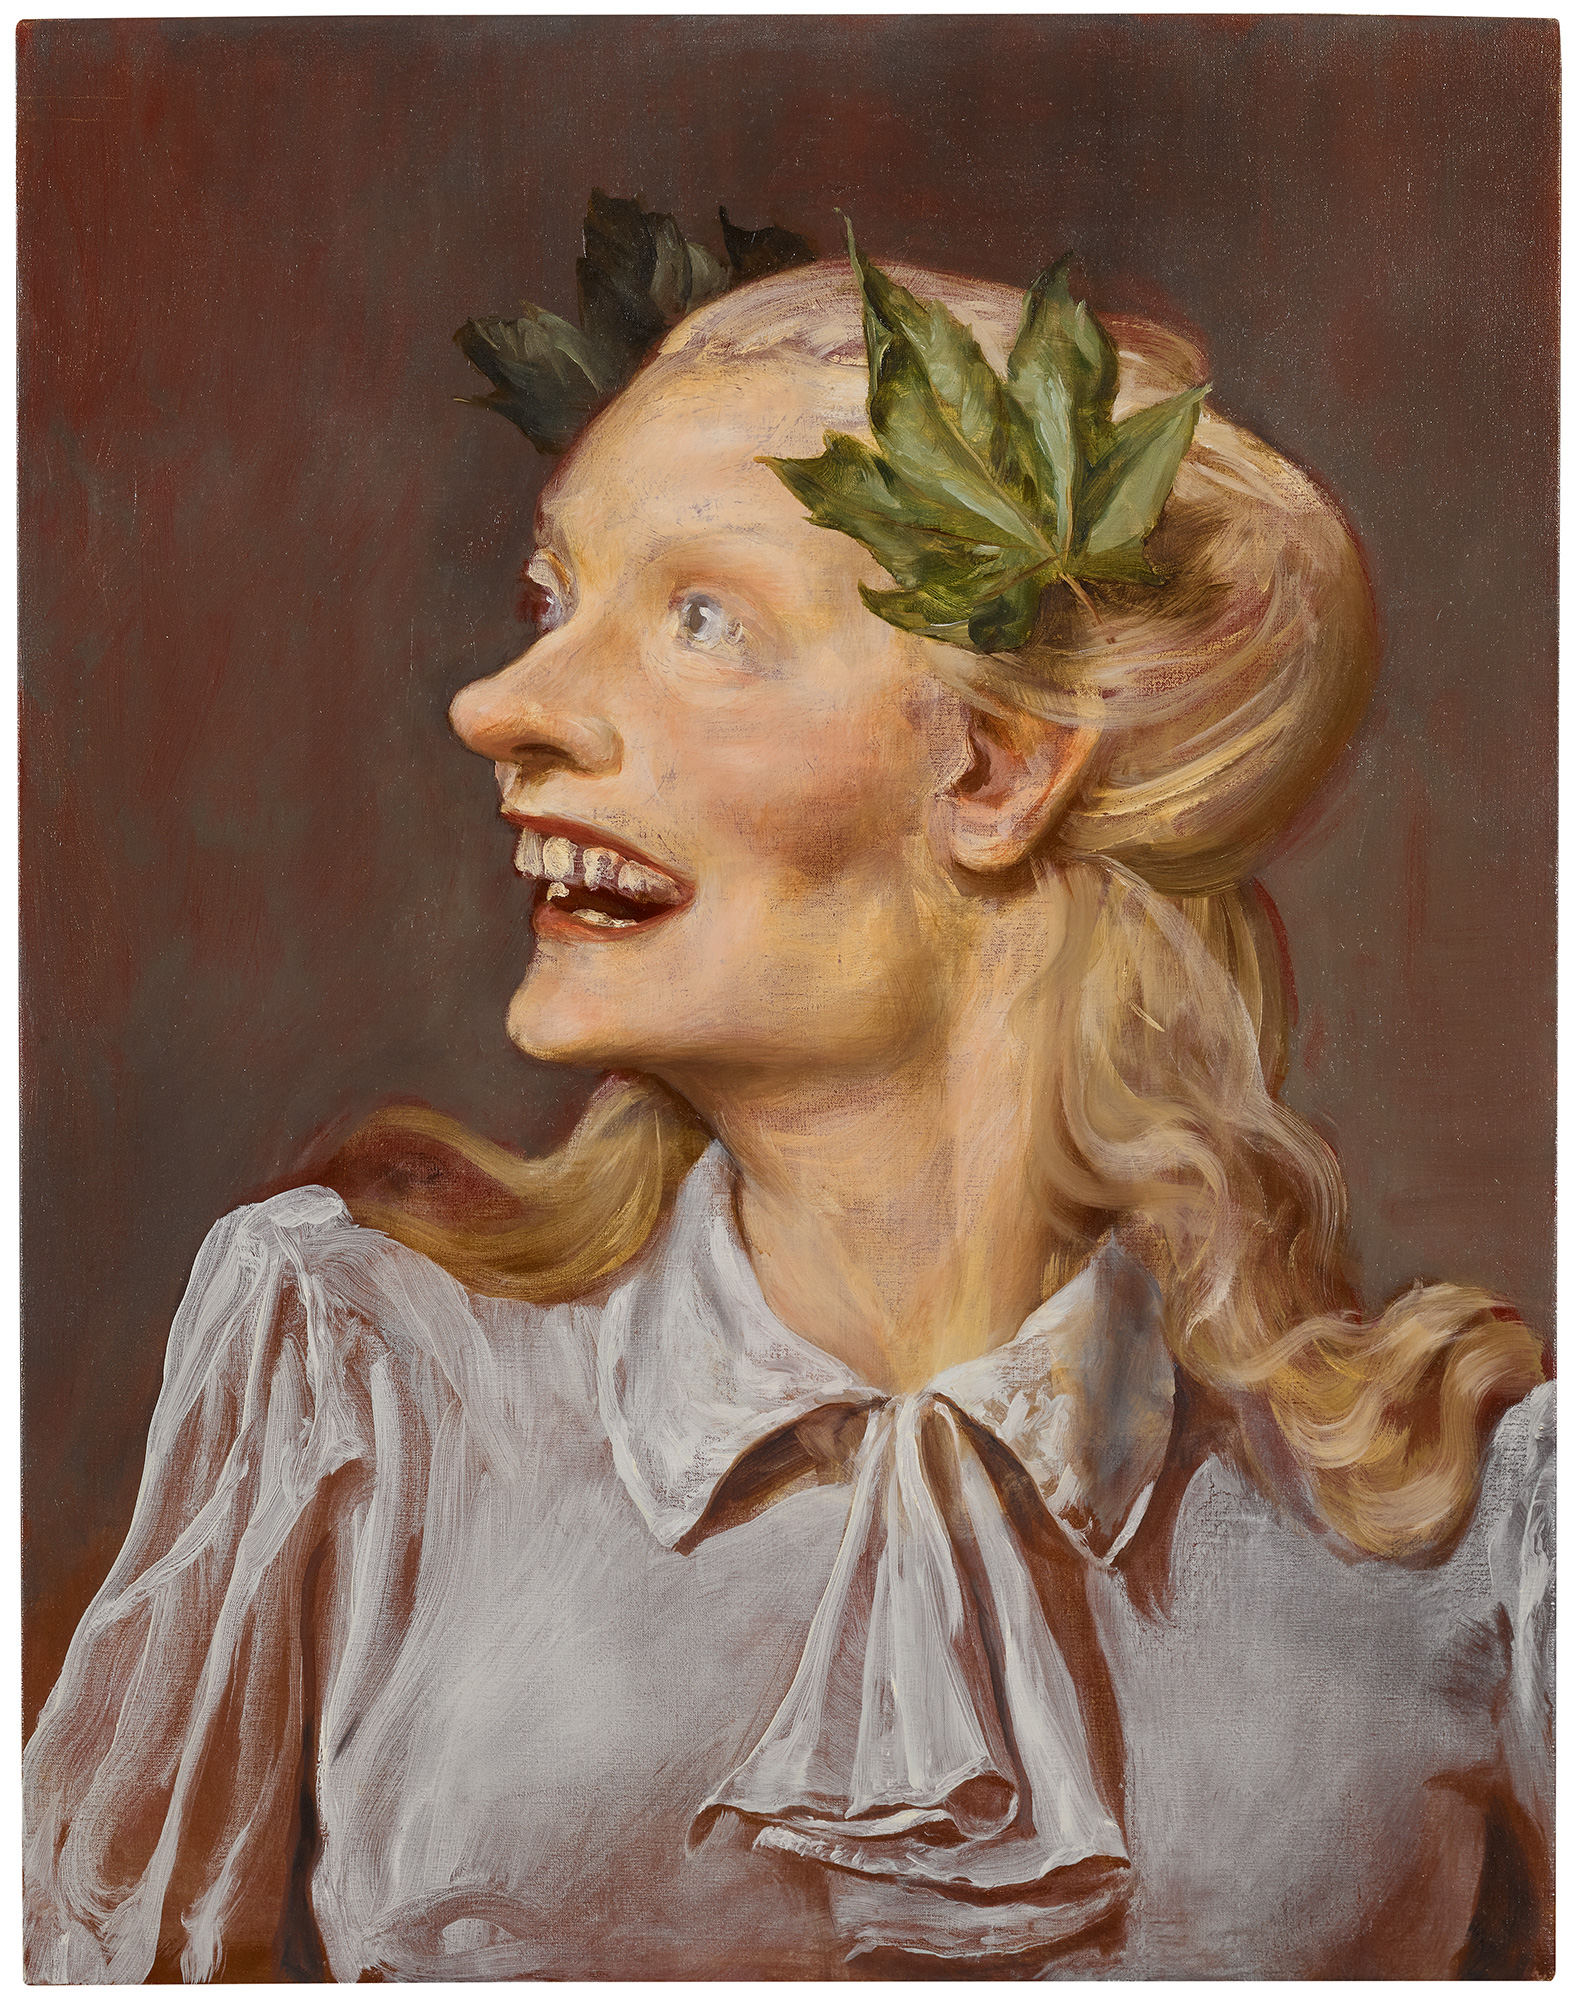 John Currin B. 1962 MINERVA signed and dated 2000 on the overlap oil on canvas 71.1 by 55.9 cm. 28 by 22 in.